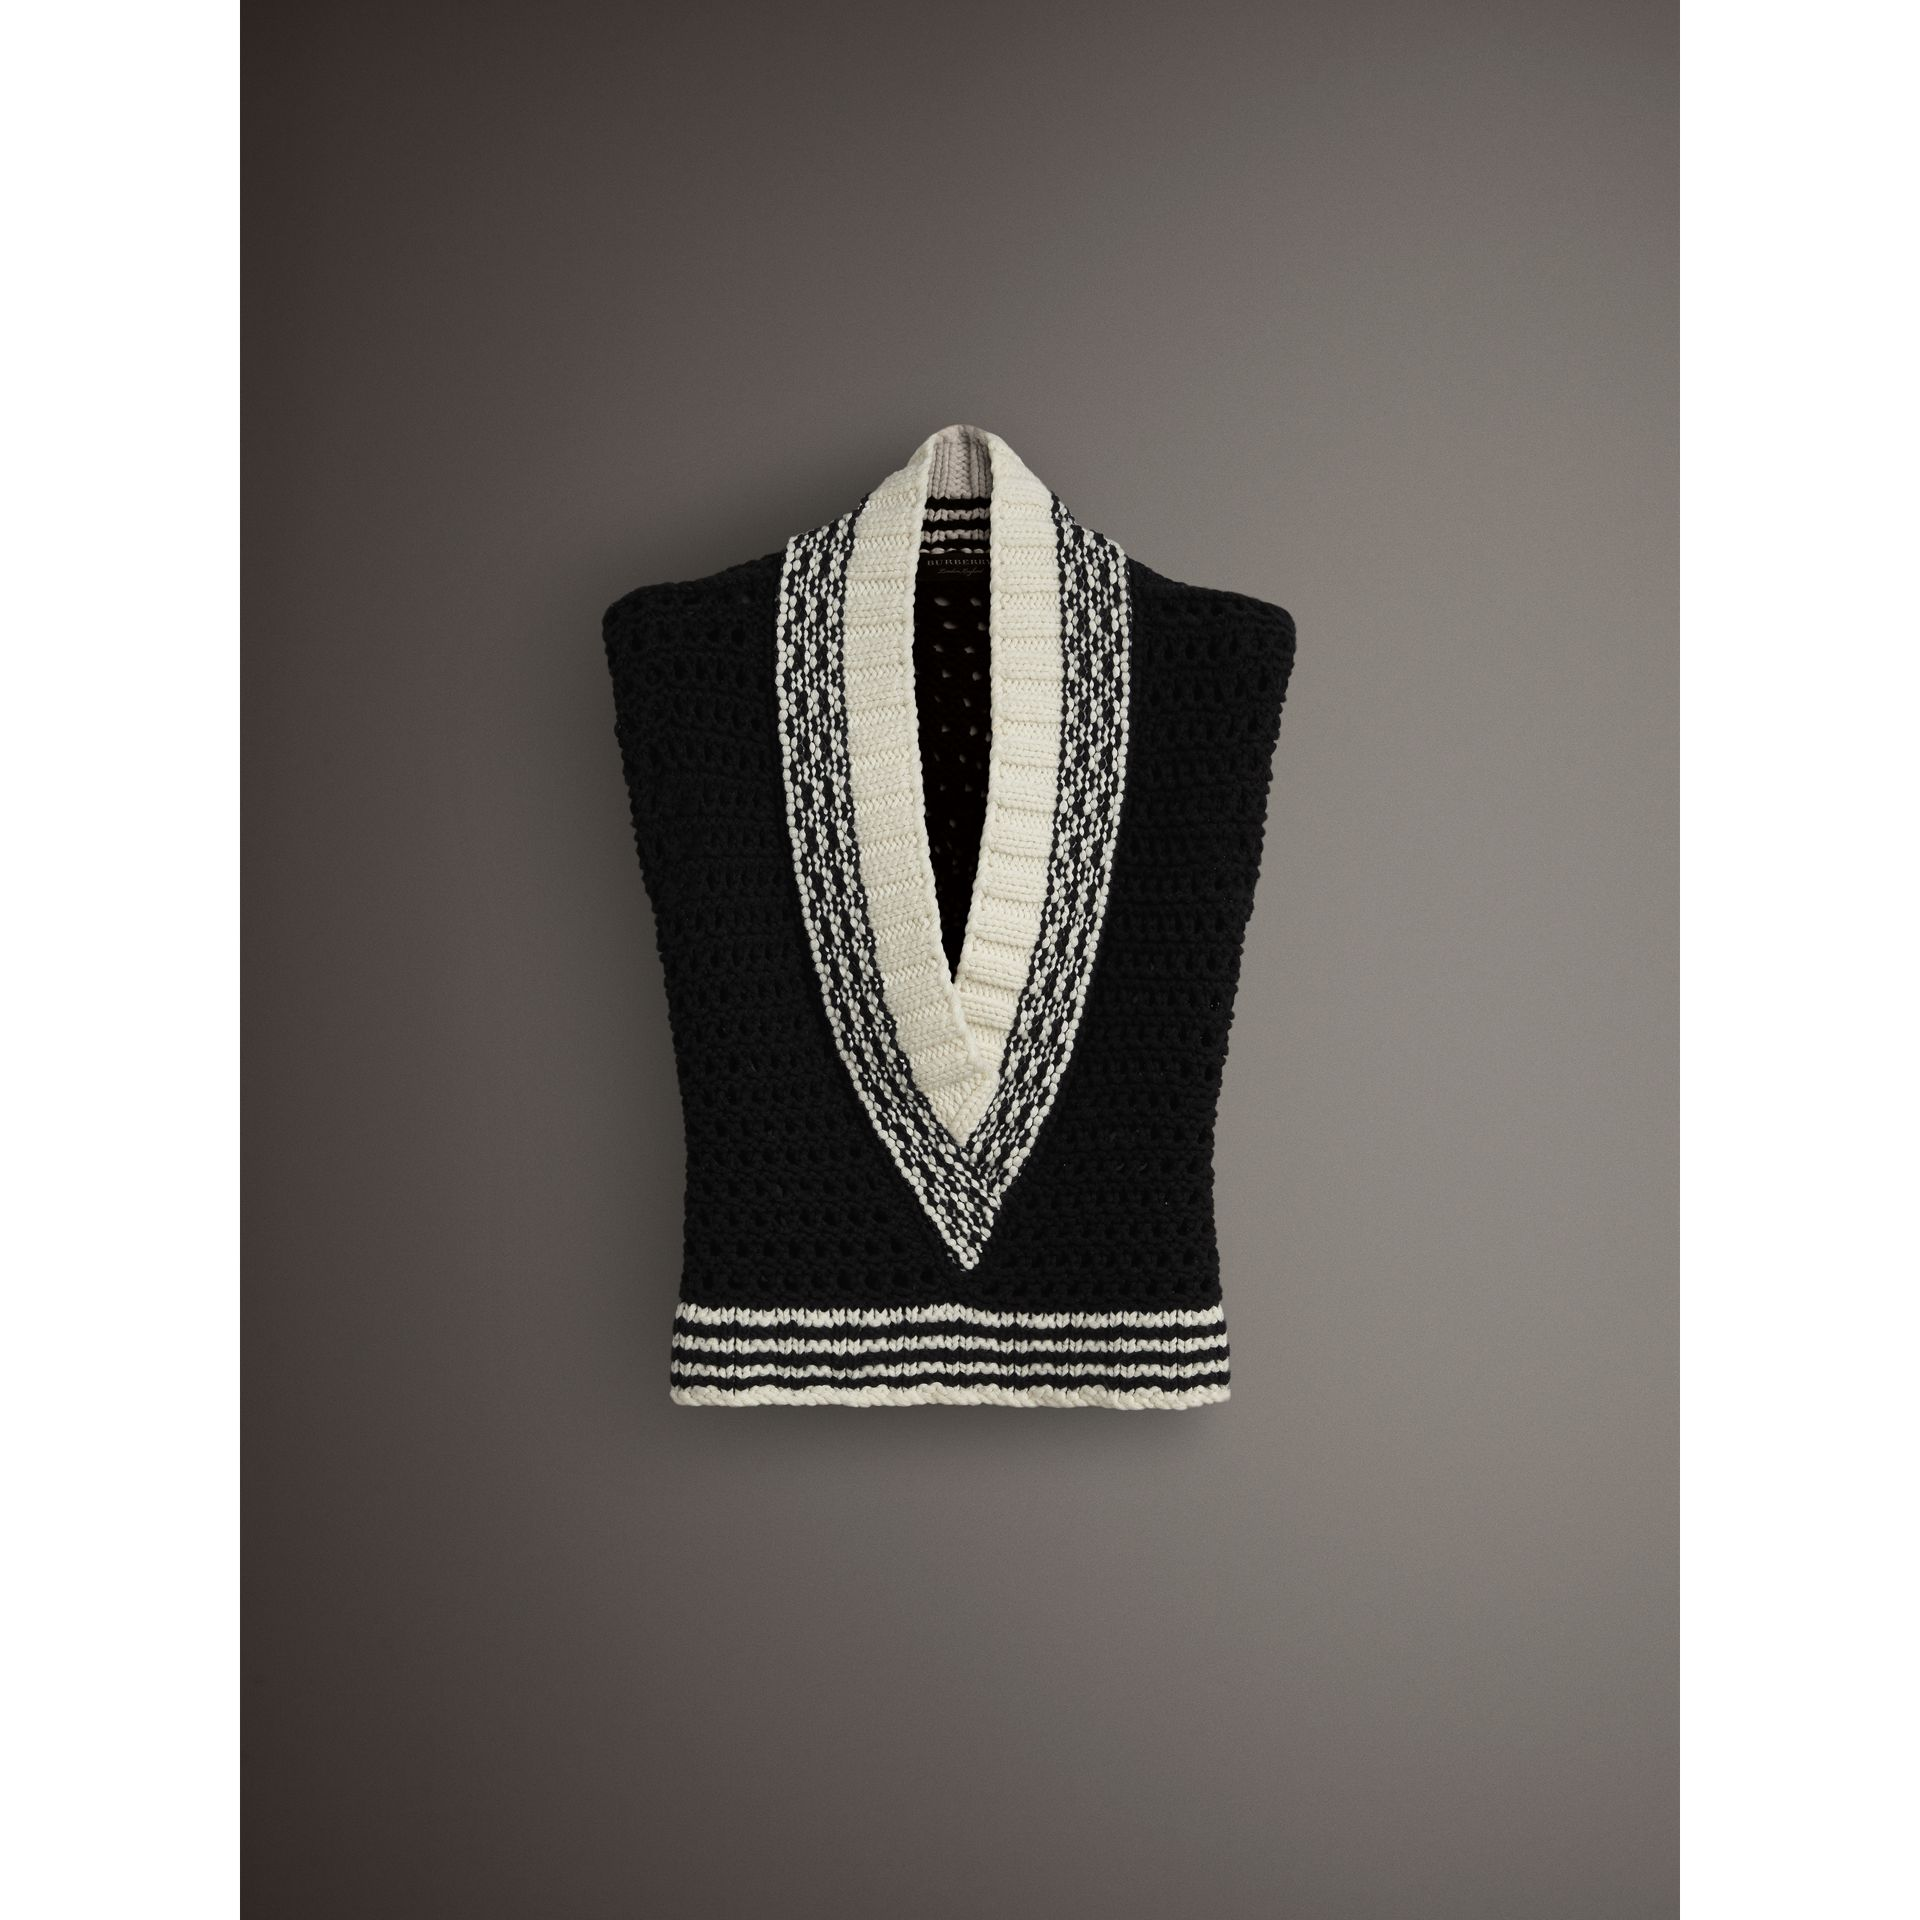 Cap-sleeve Knitted Wool V-neck Tank Top in Black/white - Women | Burberry - gallery image 4